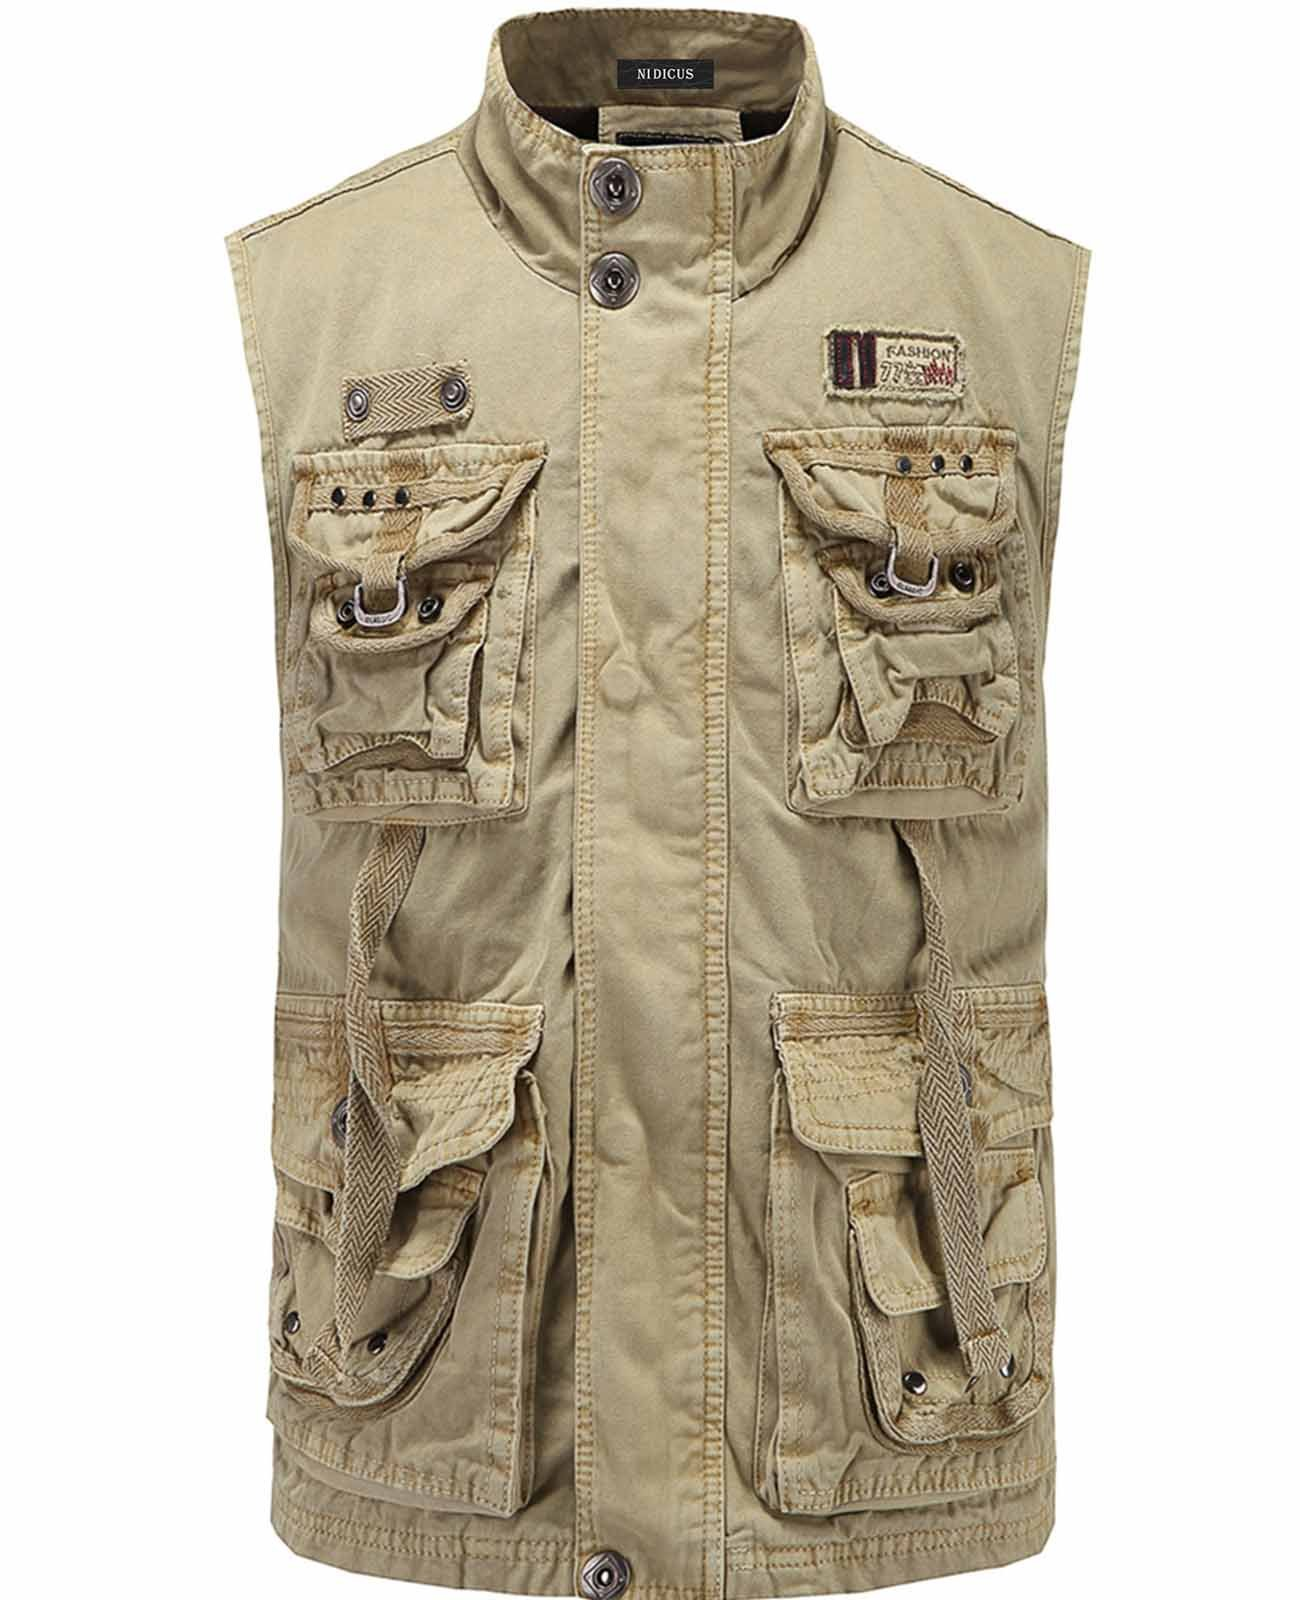 Nidicus Men Casual Work Utility Hunting Travels Sports Vest With Multi Pockets Khaki L